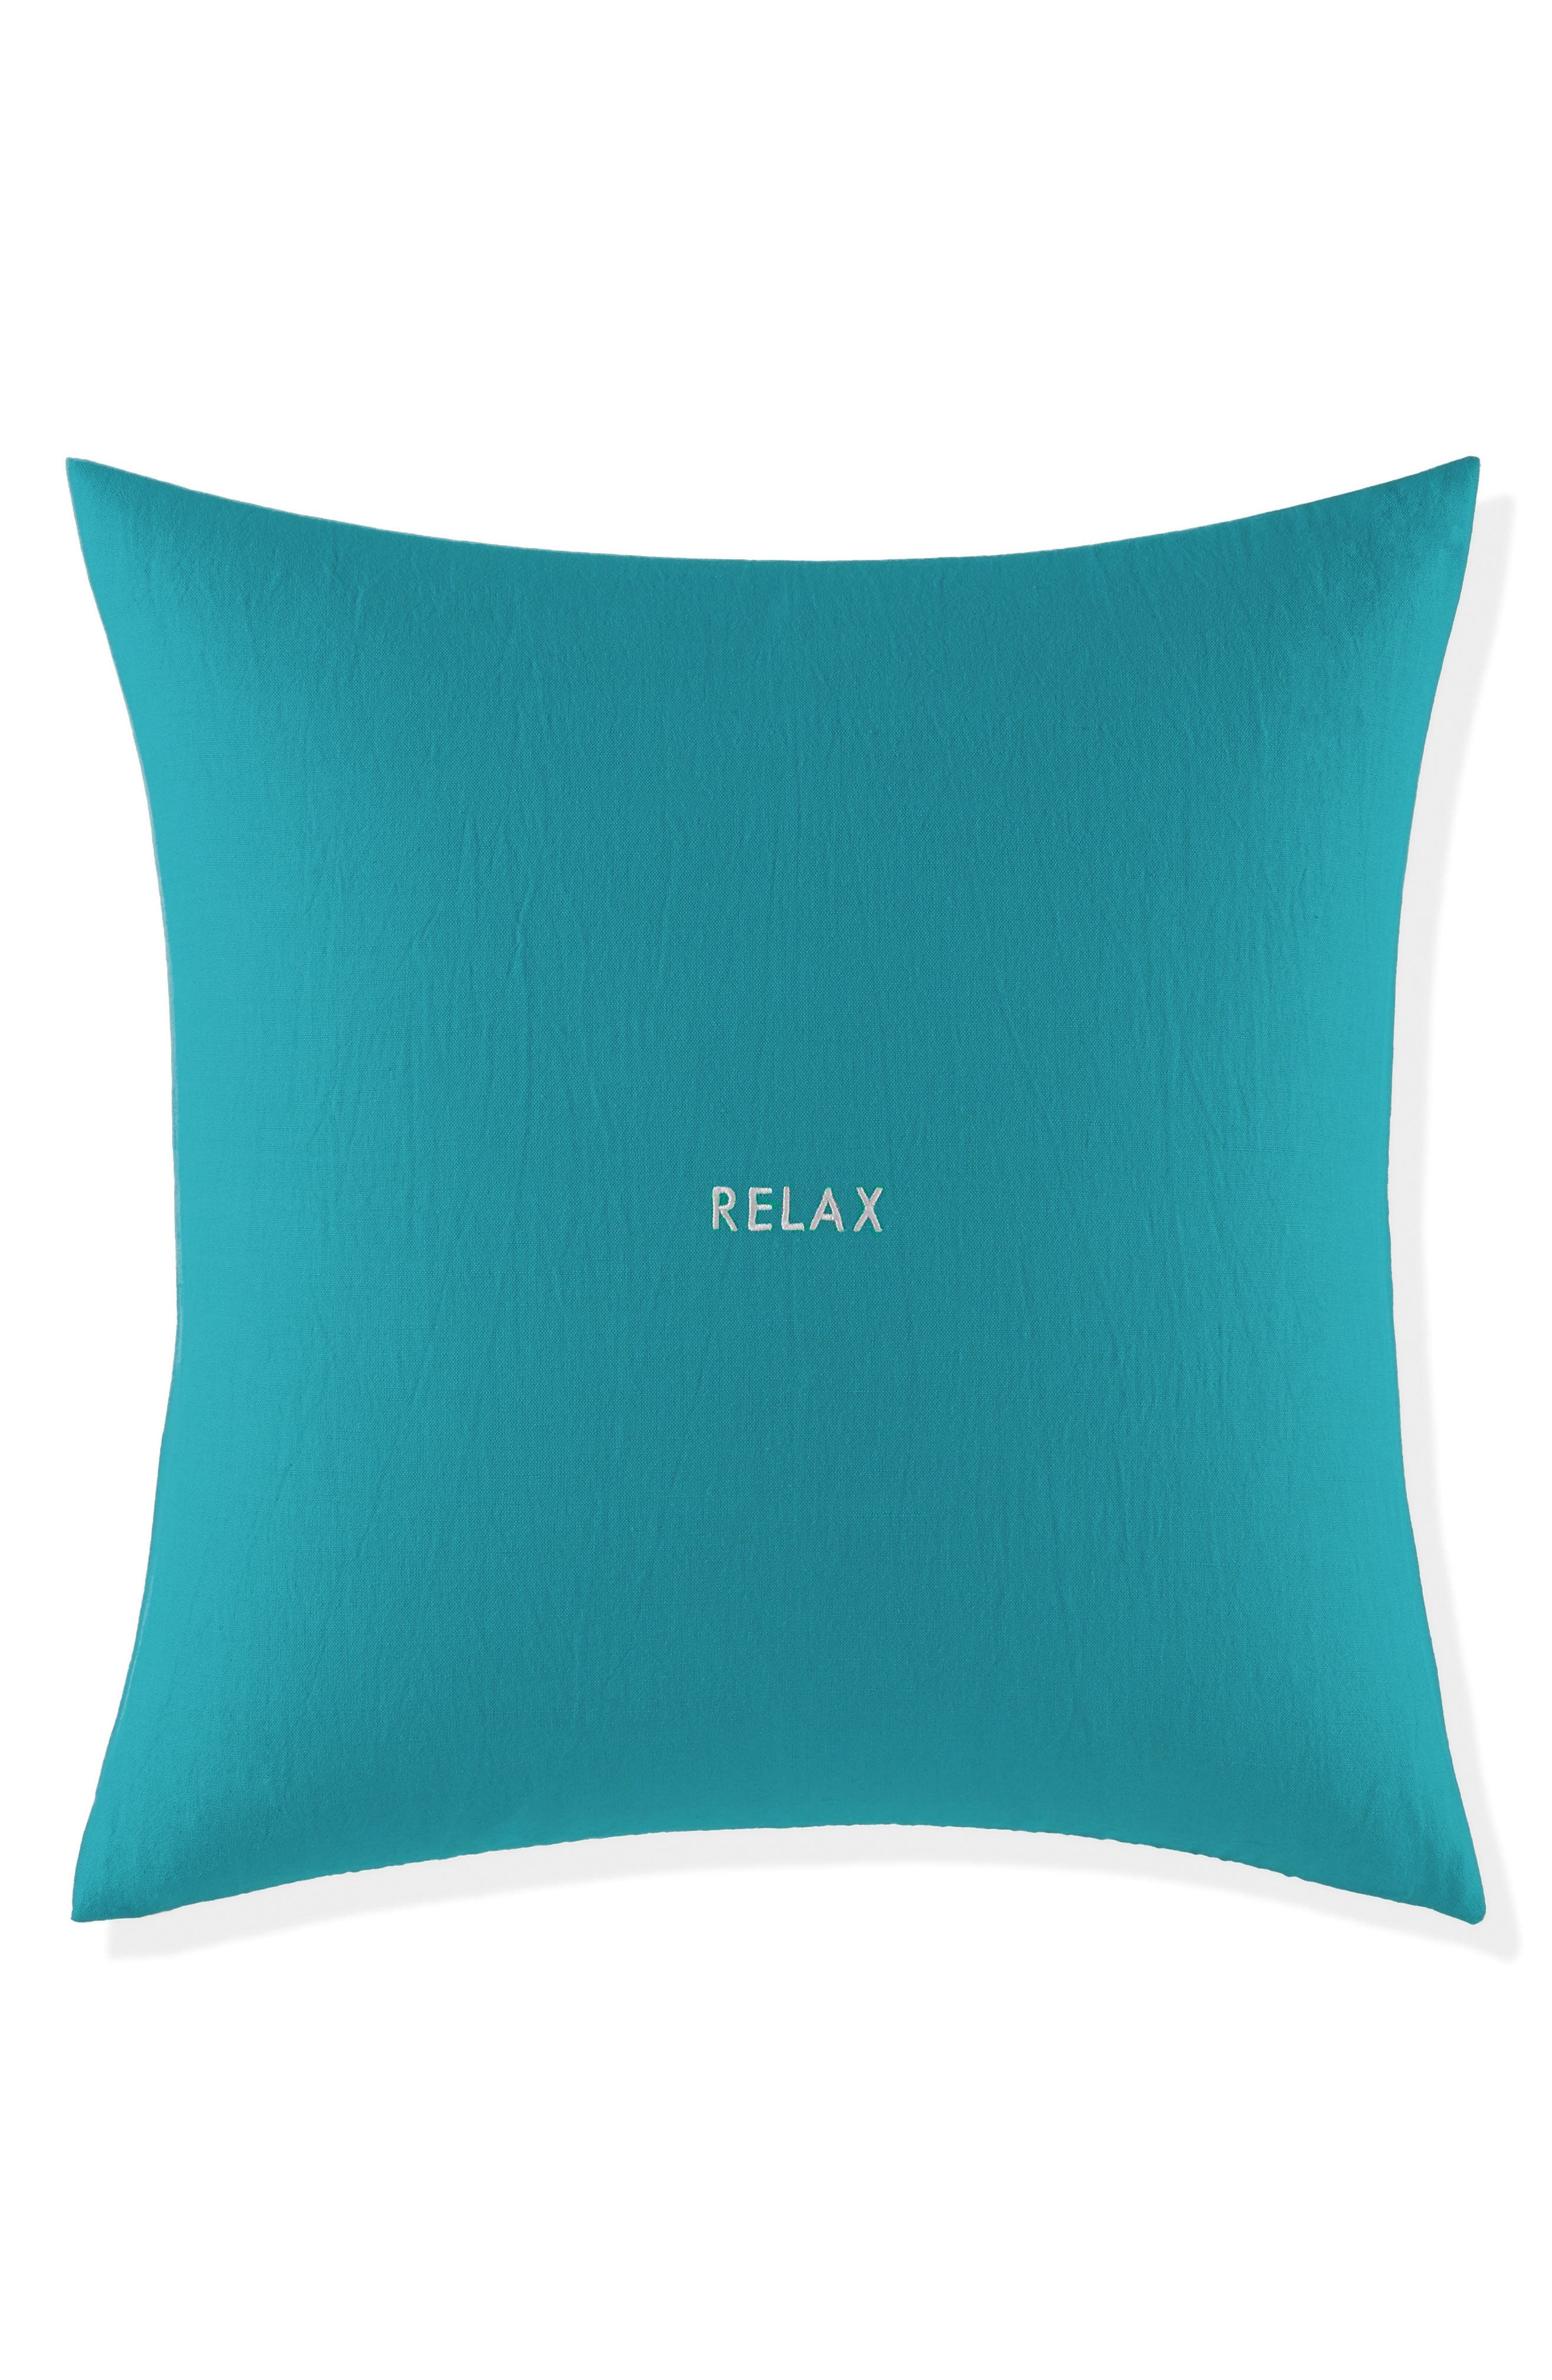 relax pillow,                             Main thumbnail 1, color,                             TURQUOISE